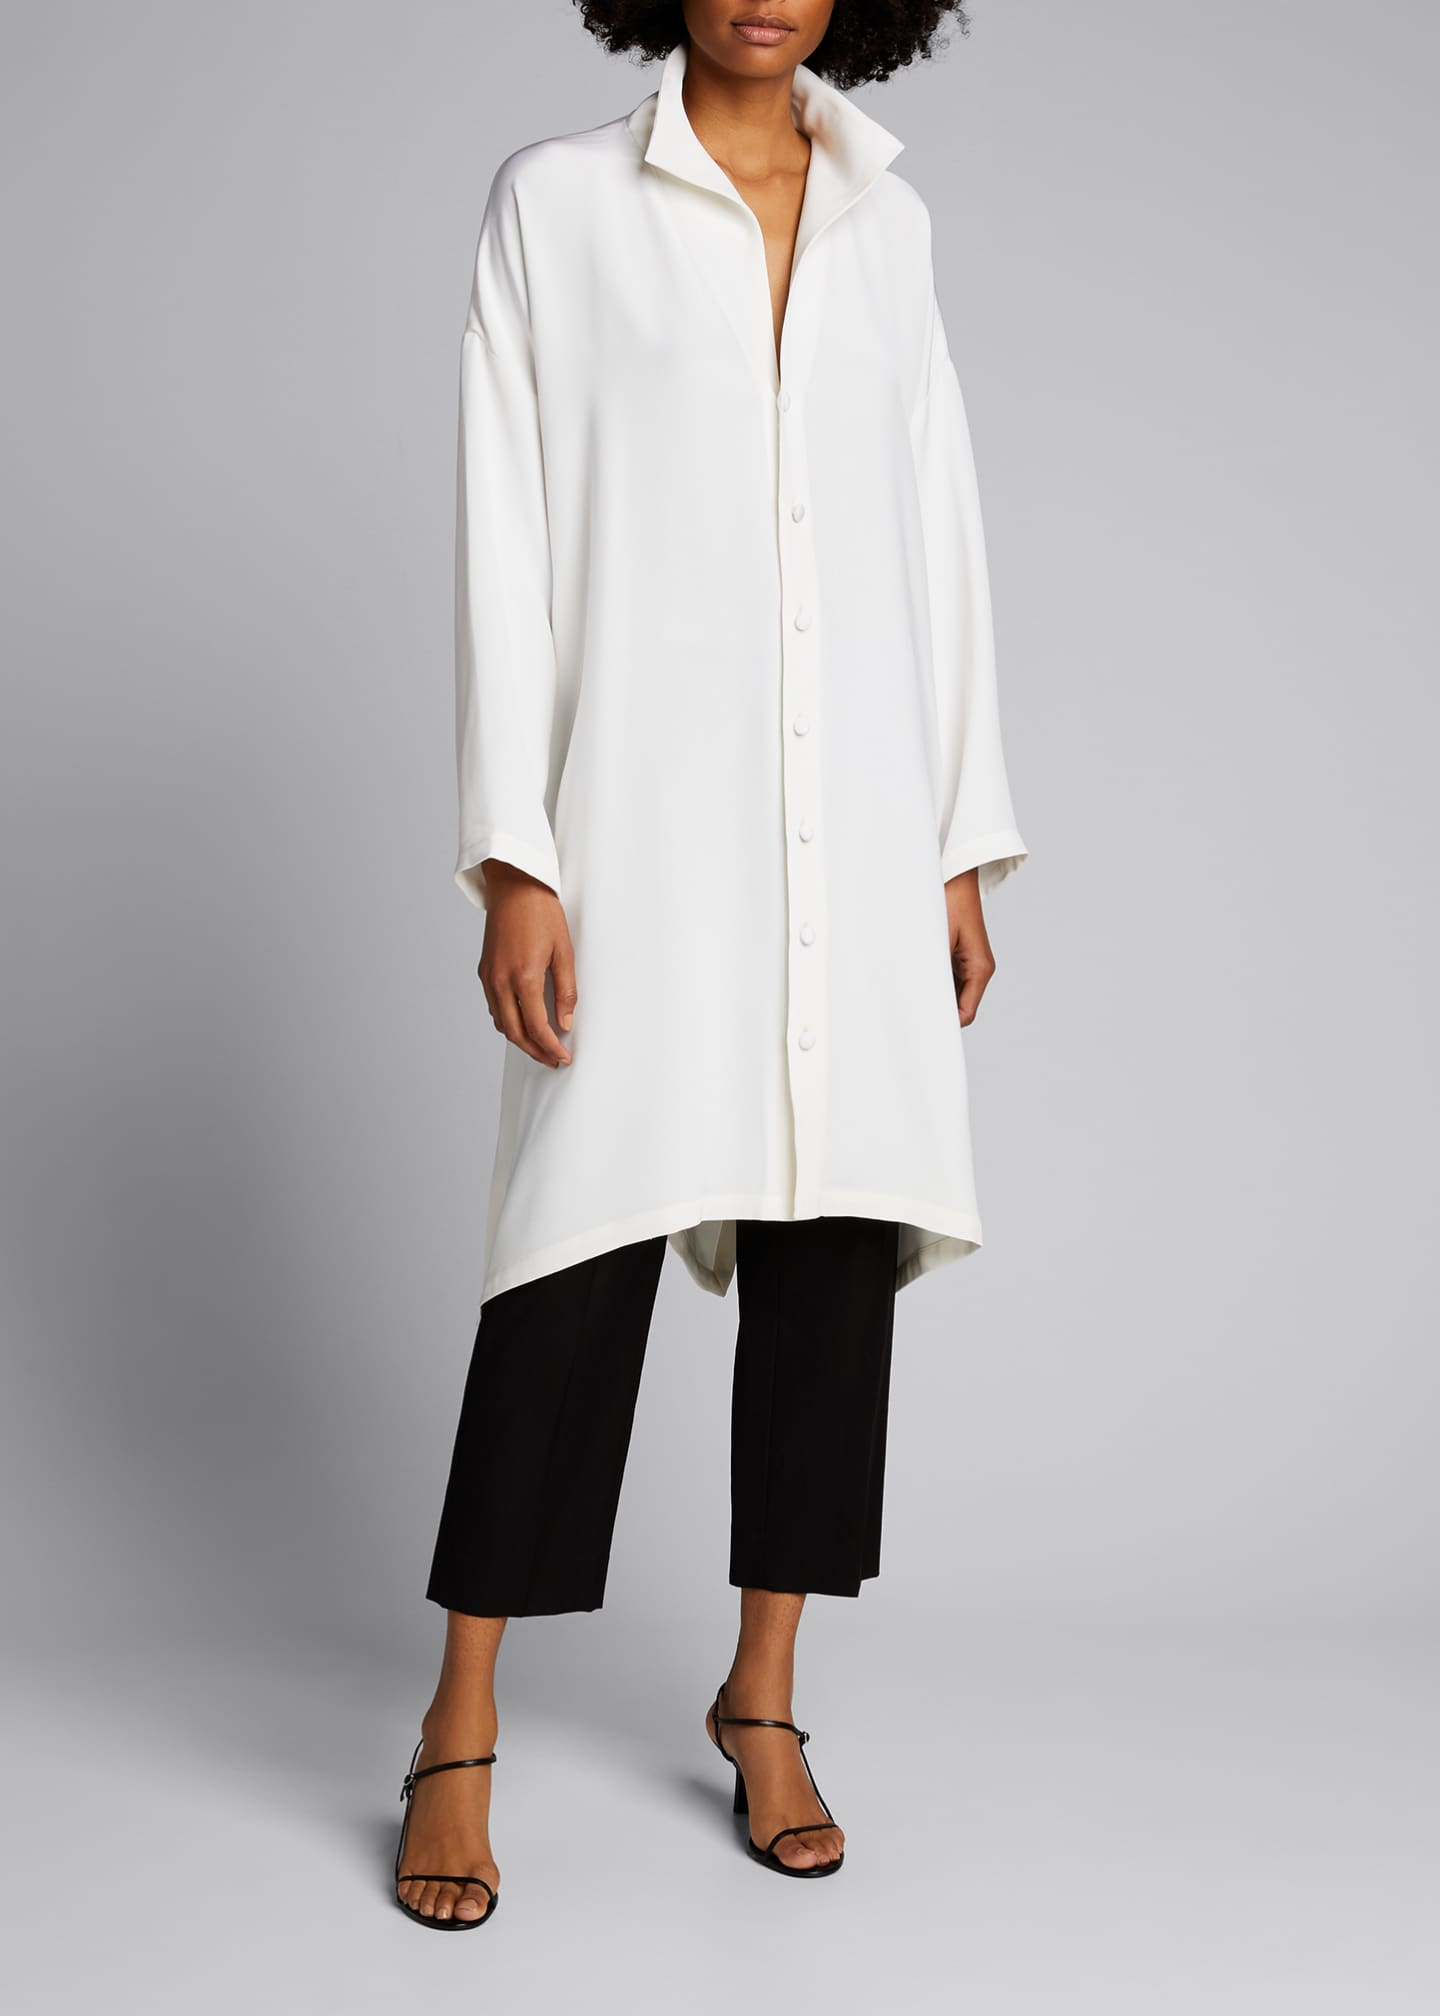 Image 1 of 5: Wide A-line Mid Weight Silk Long Shirt